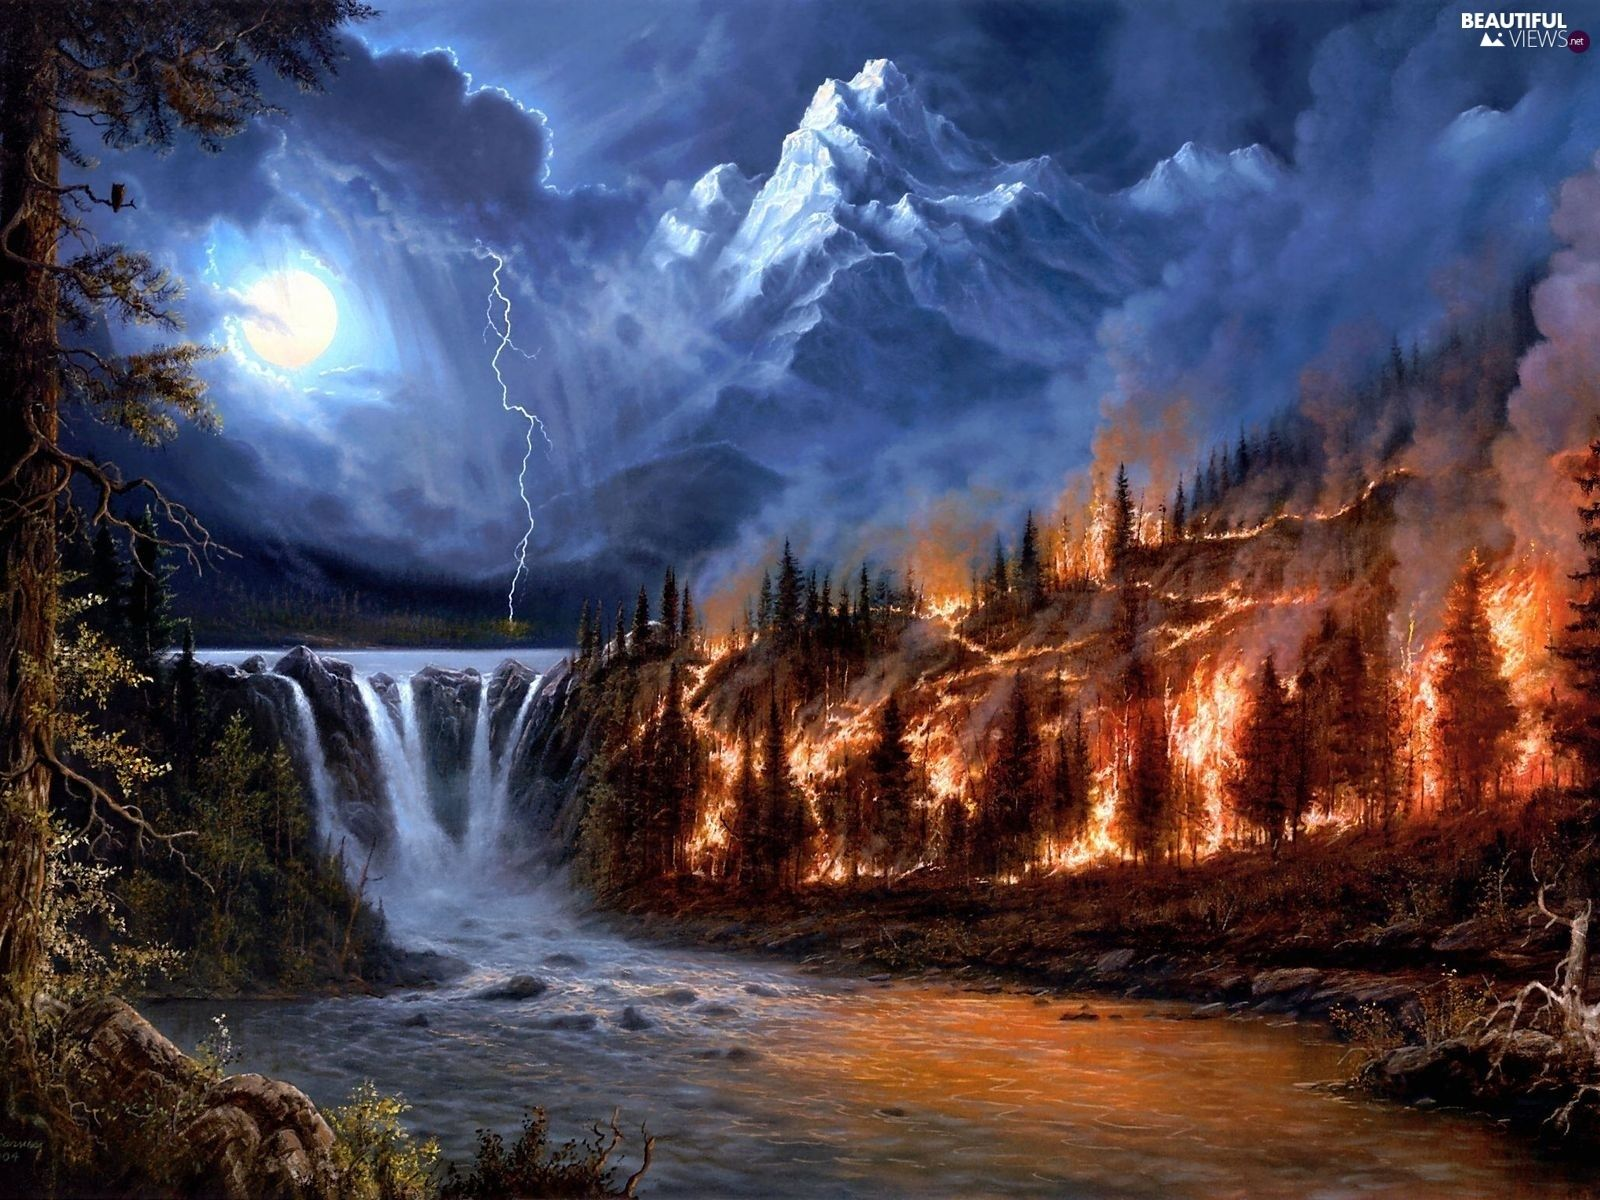 Fire Storm Night Mountains Waterfall Beautiful Views